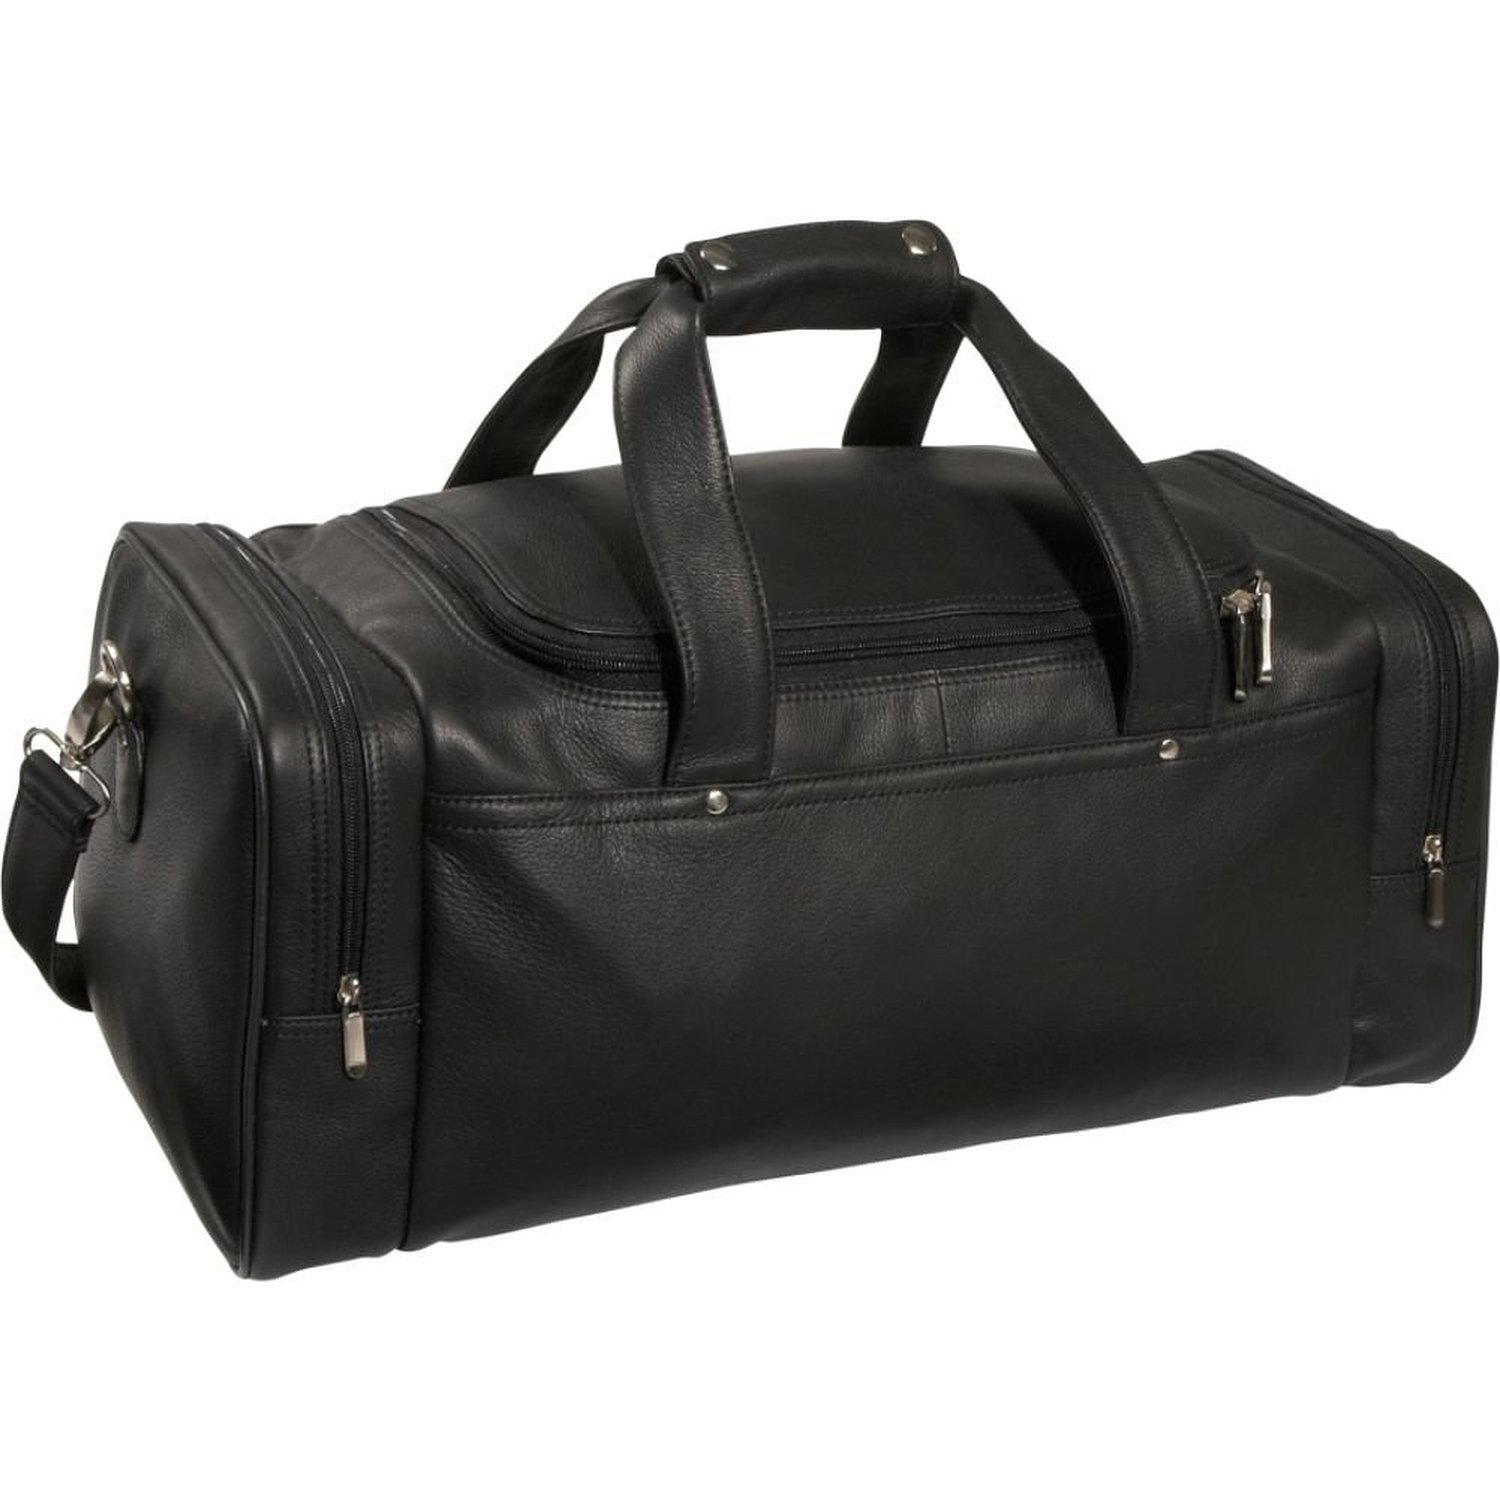 Royce Leather Sports Duffel Bag, Black, Large